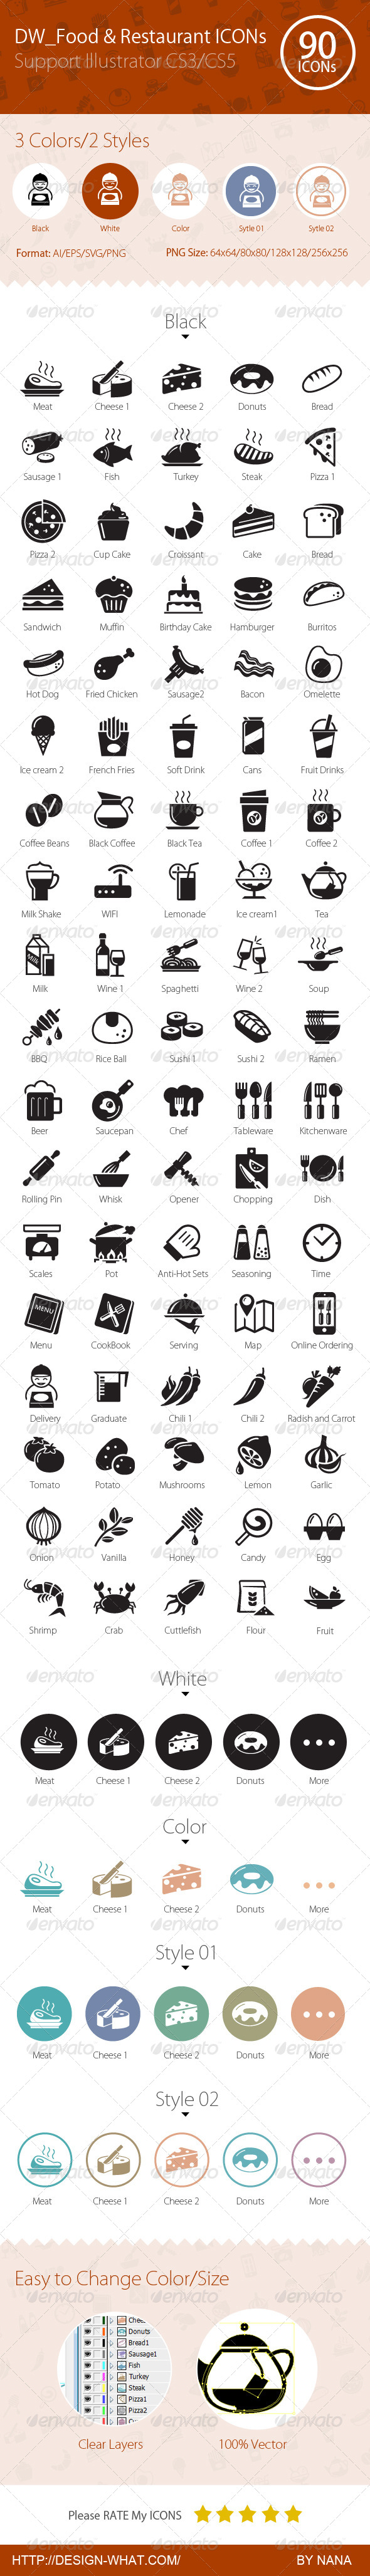 GraphicRiver 90 Food & Restaurant ICONs 6283144